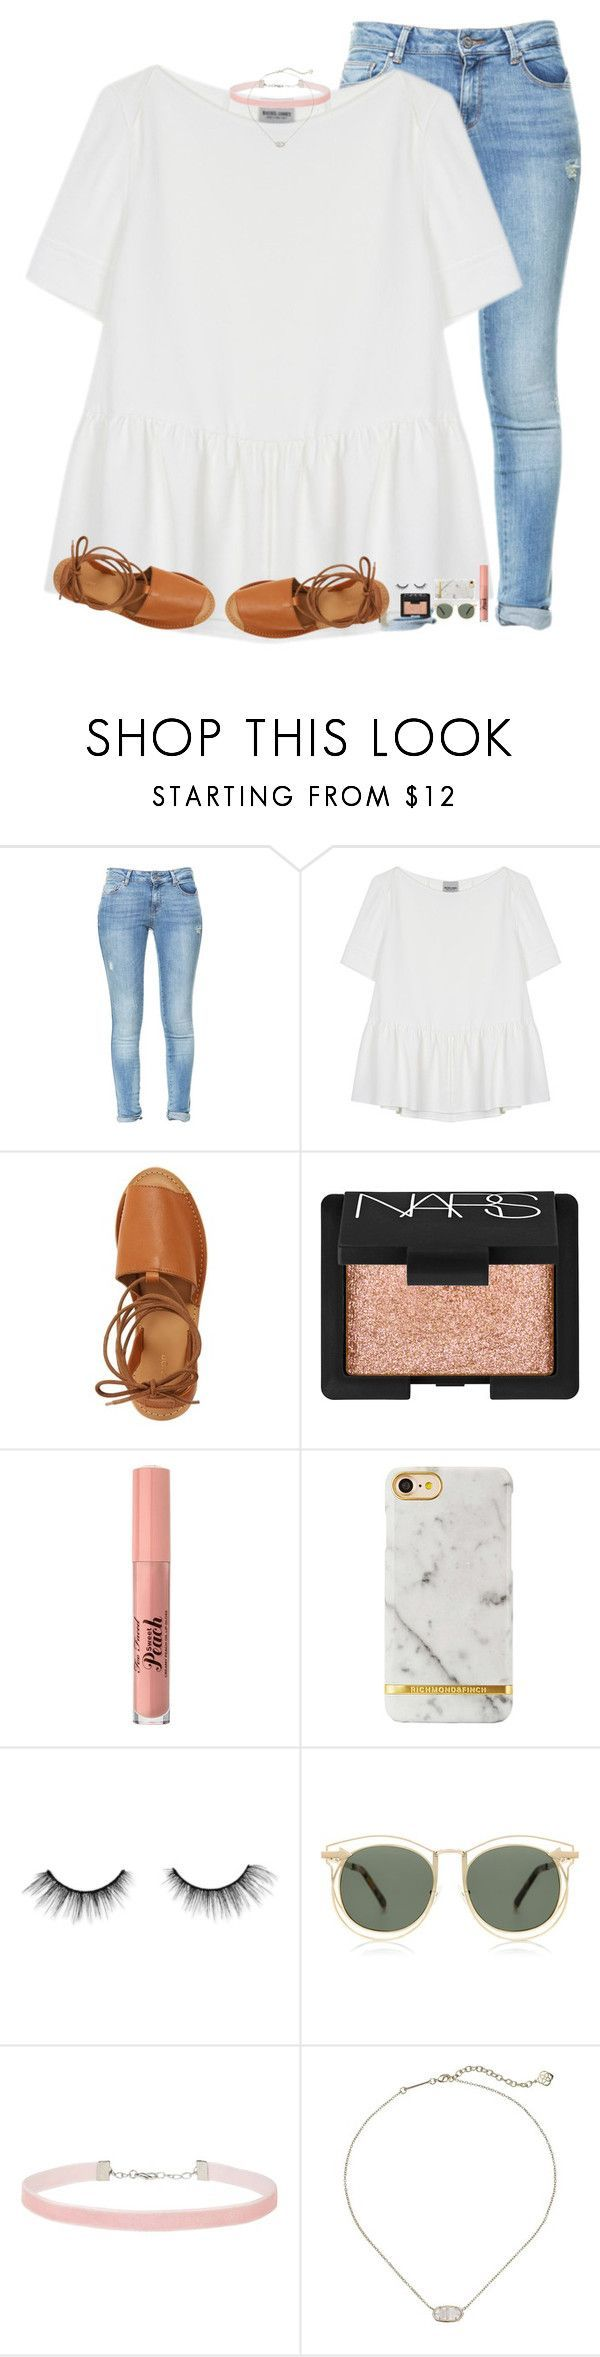 """""""comment any youtuber recommendations"""" by hgw8503 ❤ liked on Polyvore featuring Zara, Rachel Comey, Topshop, NARS Cosmetics, Too Faced Cosmetics, tarte, Karen Walker, Miss Selfridge and Kendra Scott"""